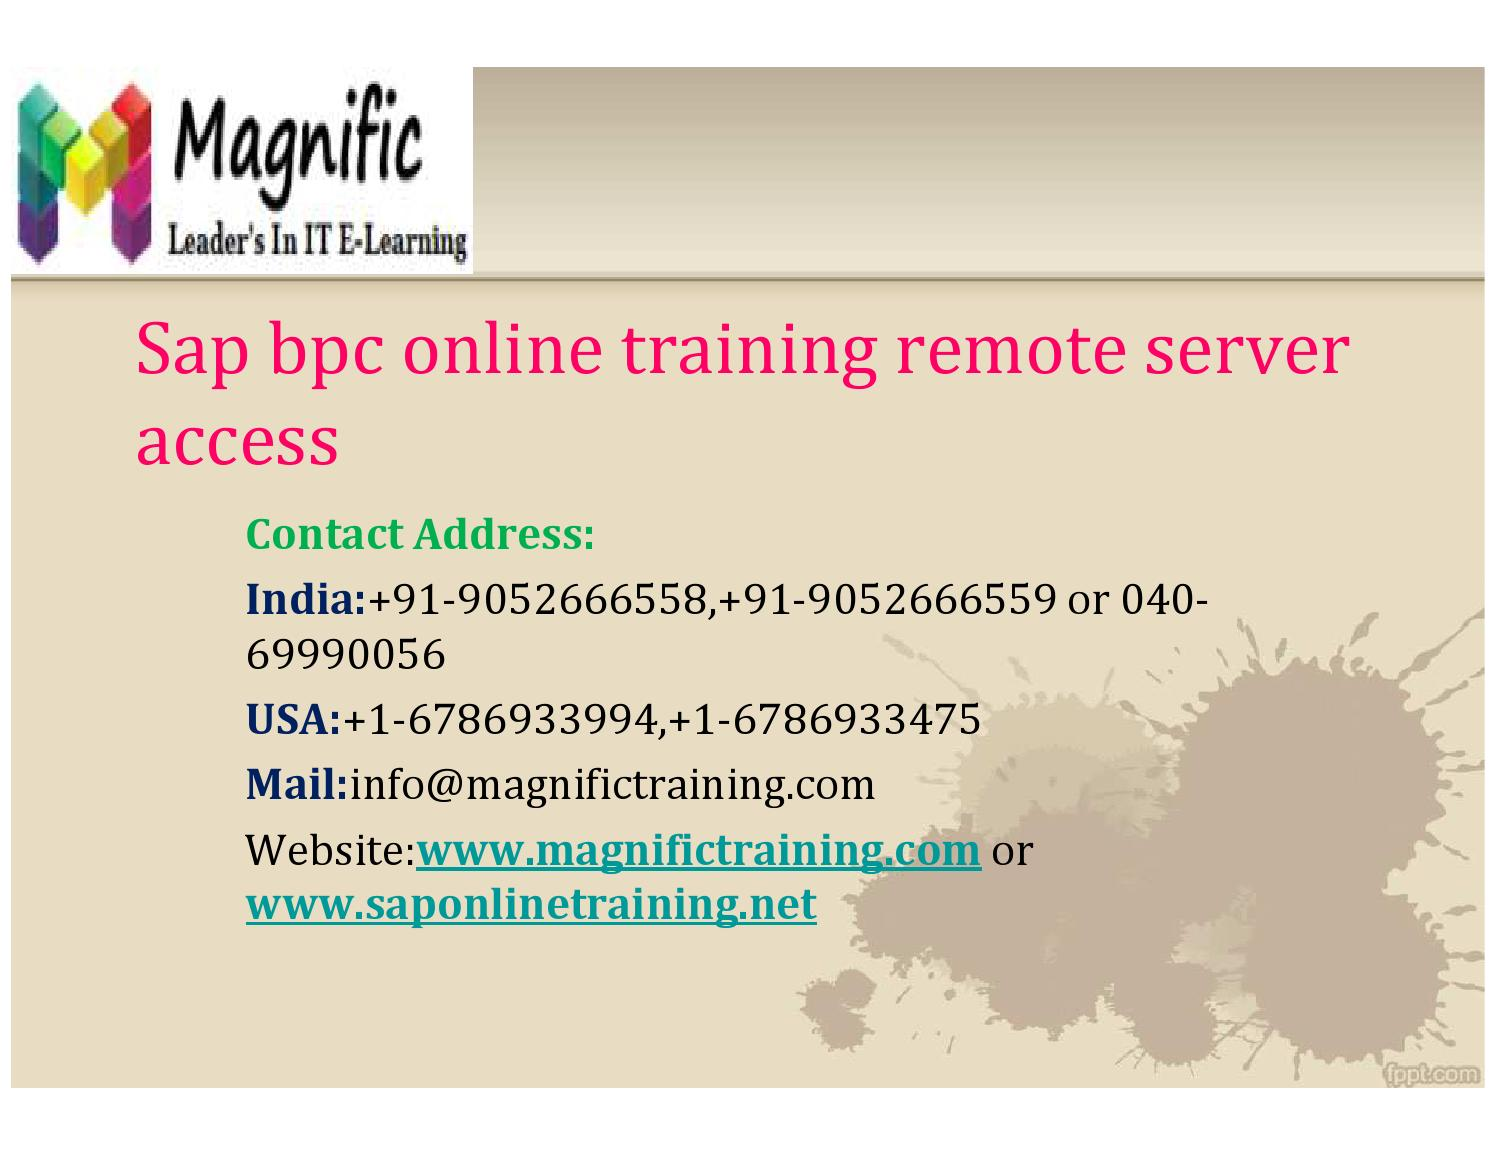 Sap bpc online training remote server access by magnificks - issuu